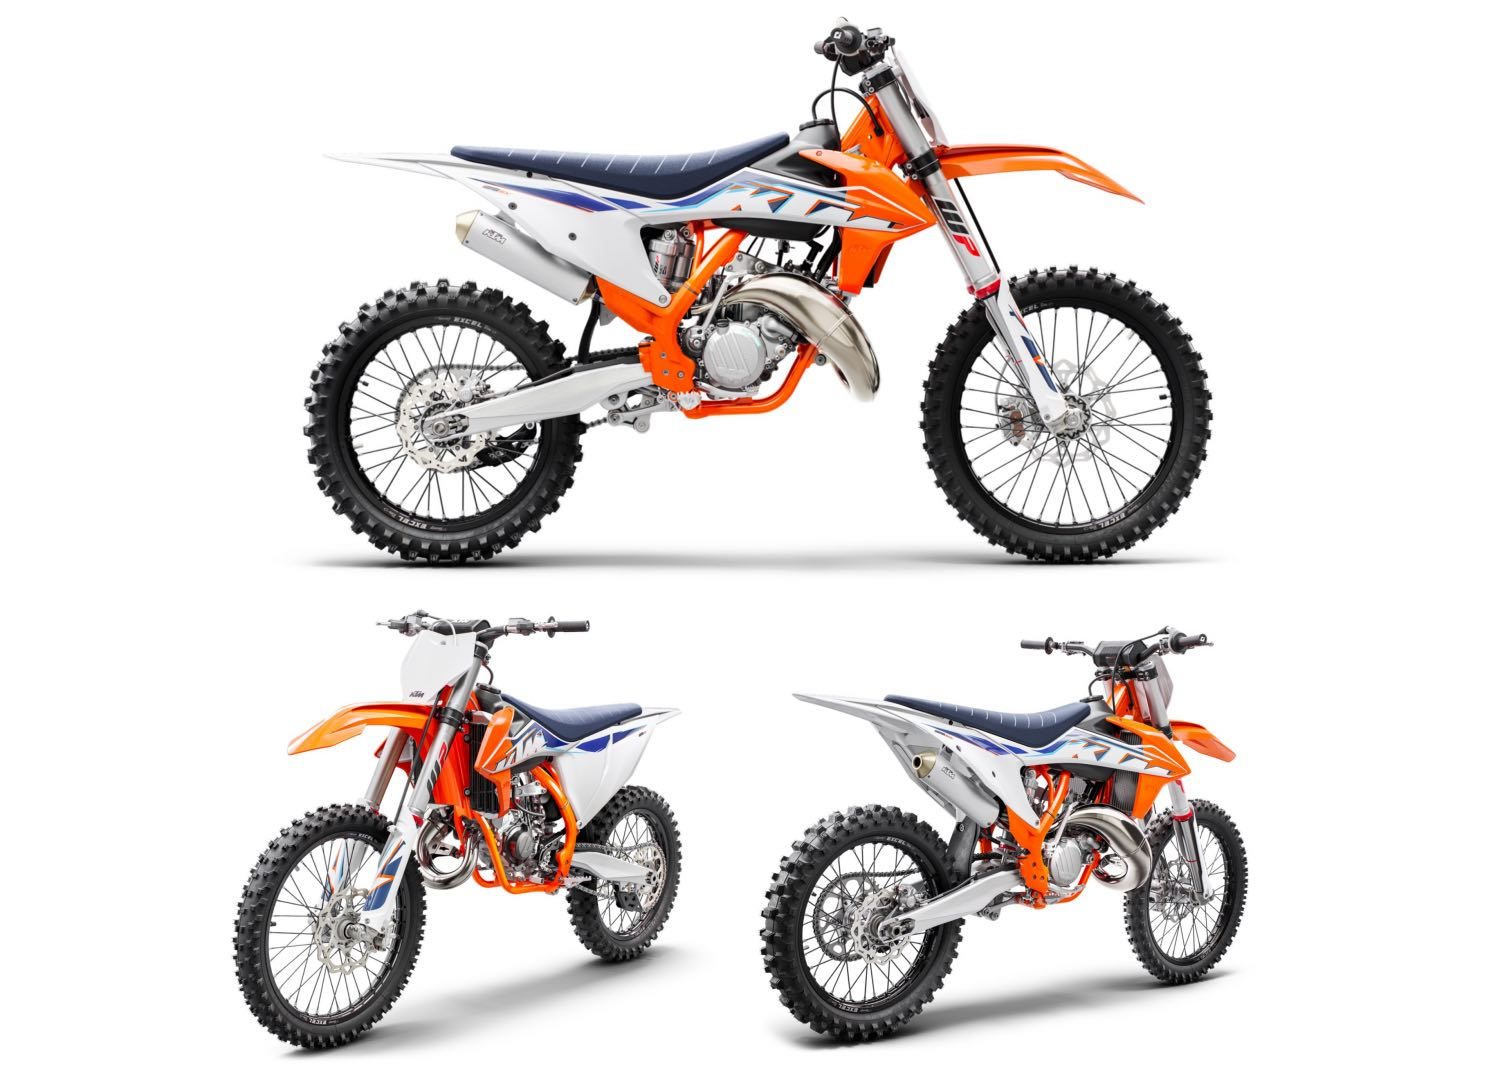 Introducing the 2022 KTM 125 SX